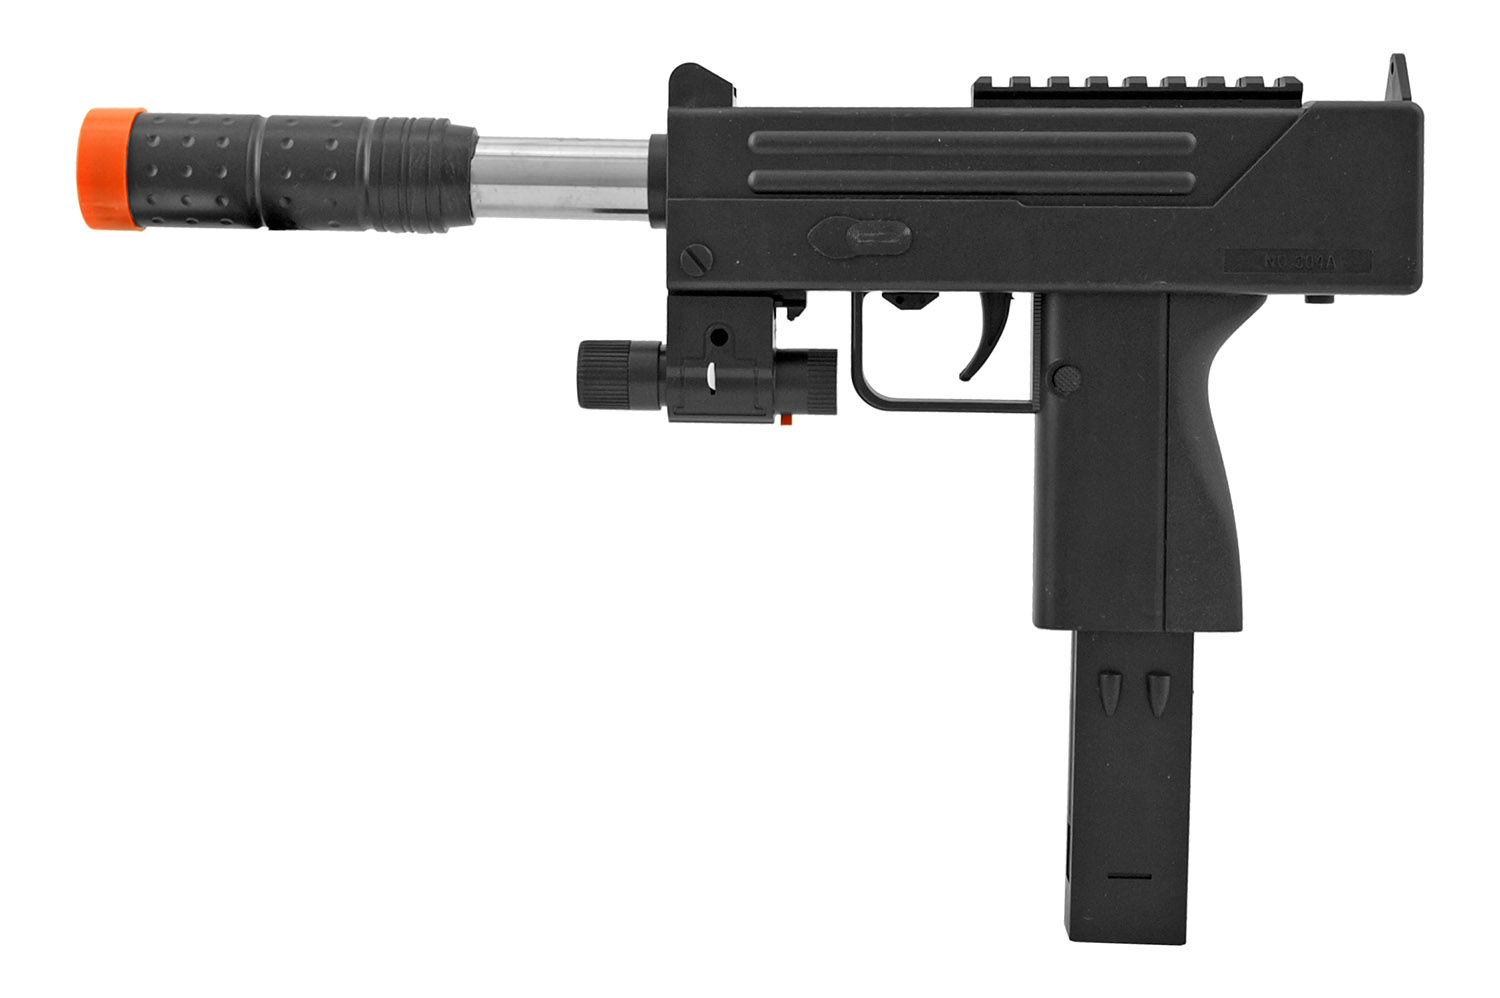 UK Arms P2304BAG Spring Powered Airsoft Rifle with Flashlight Attachment - Black